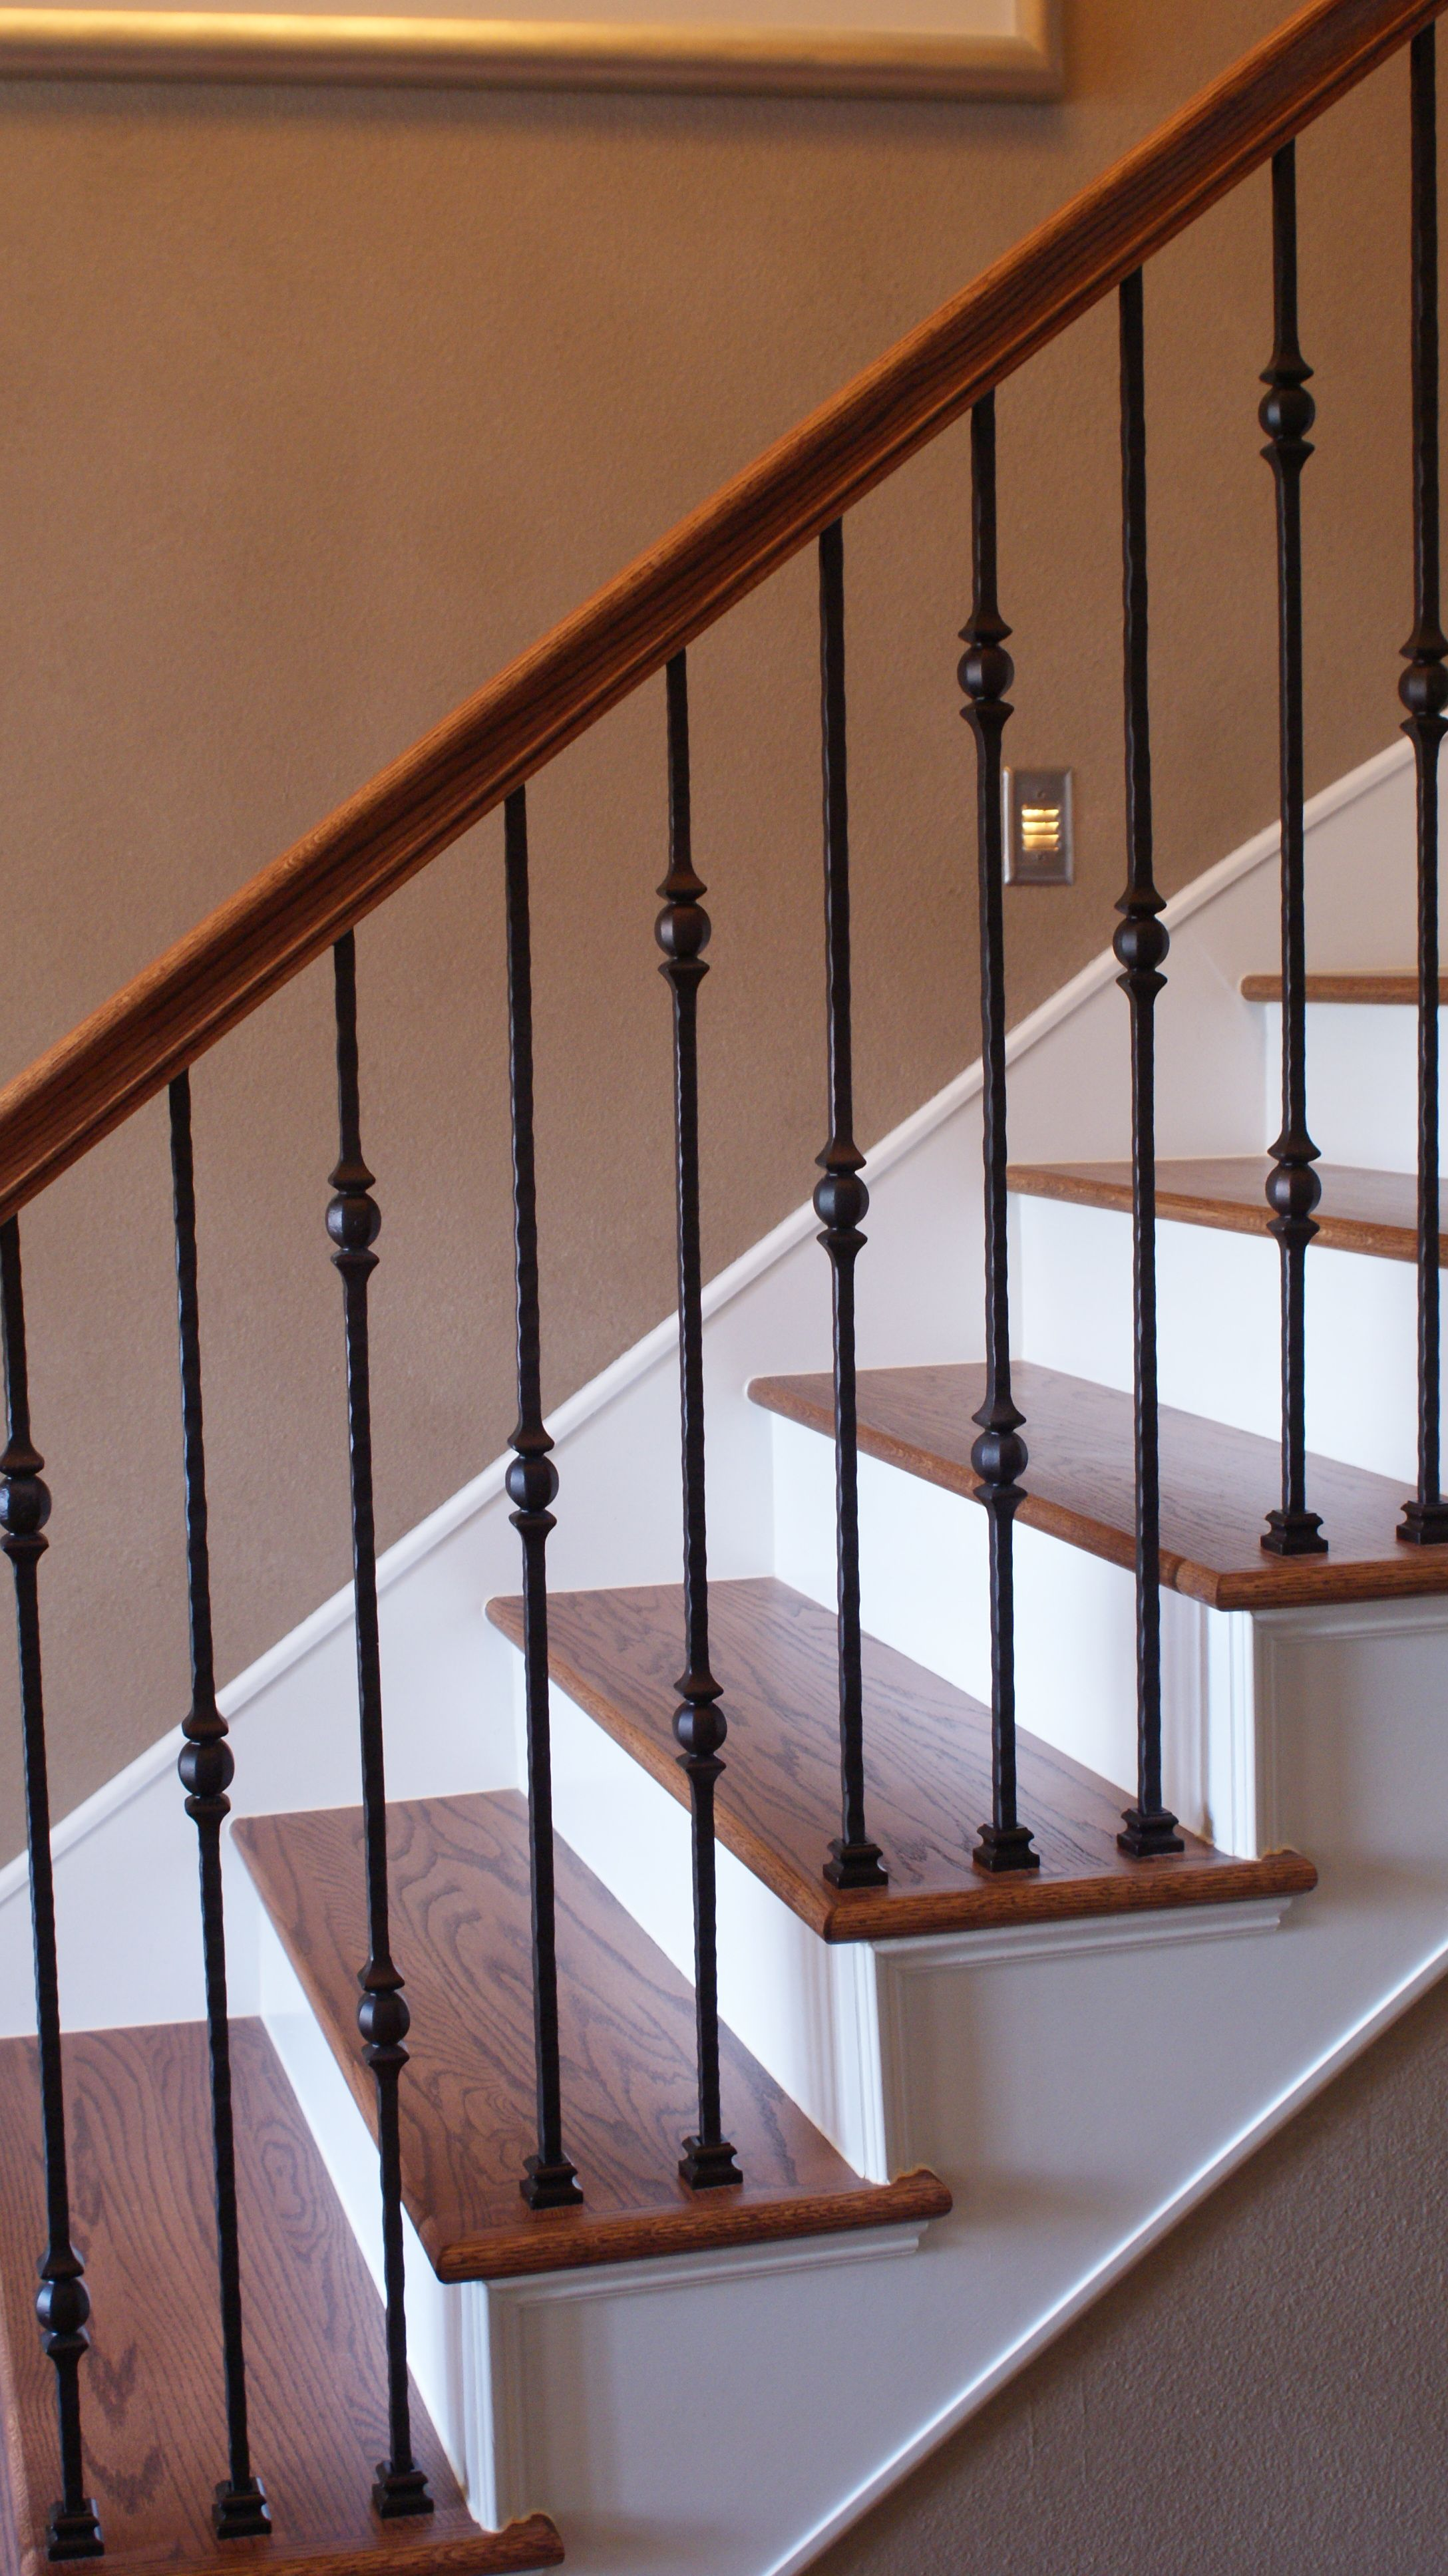 The Stella Journey Residence Iron Stair Railing Metal Stair | Wood And Iron Stair Railing | Banister | Reclaimed Wood | Wrought Iron Staircase Used | Ss Railing Design | Metal